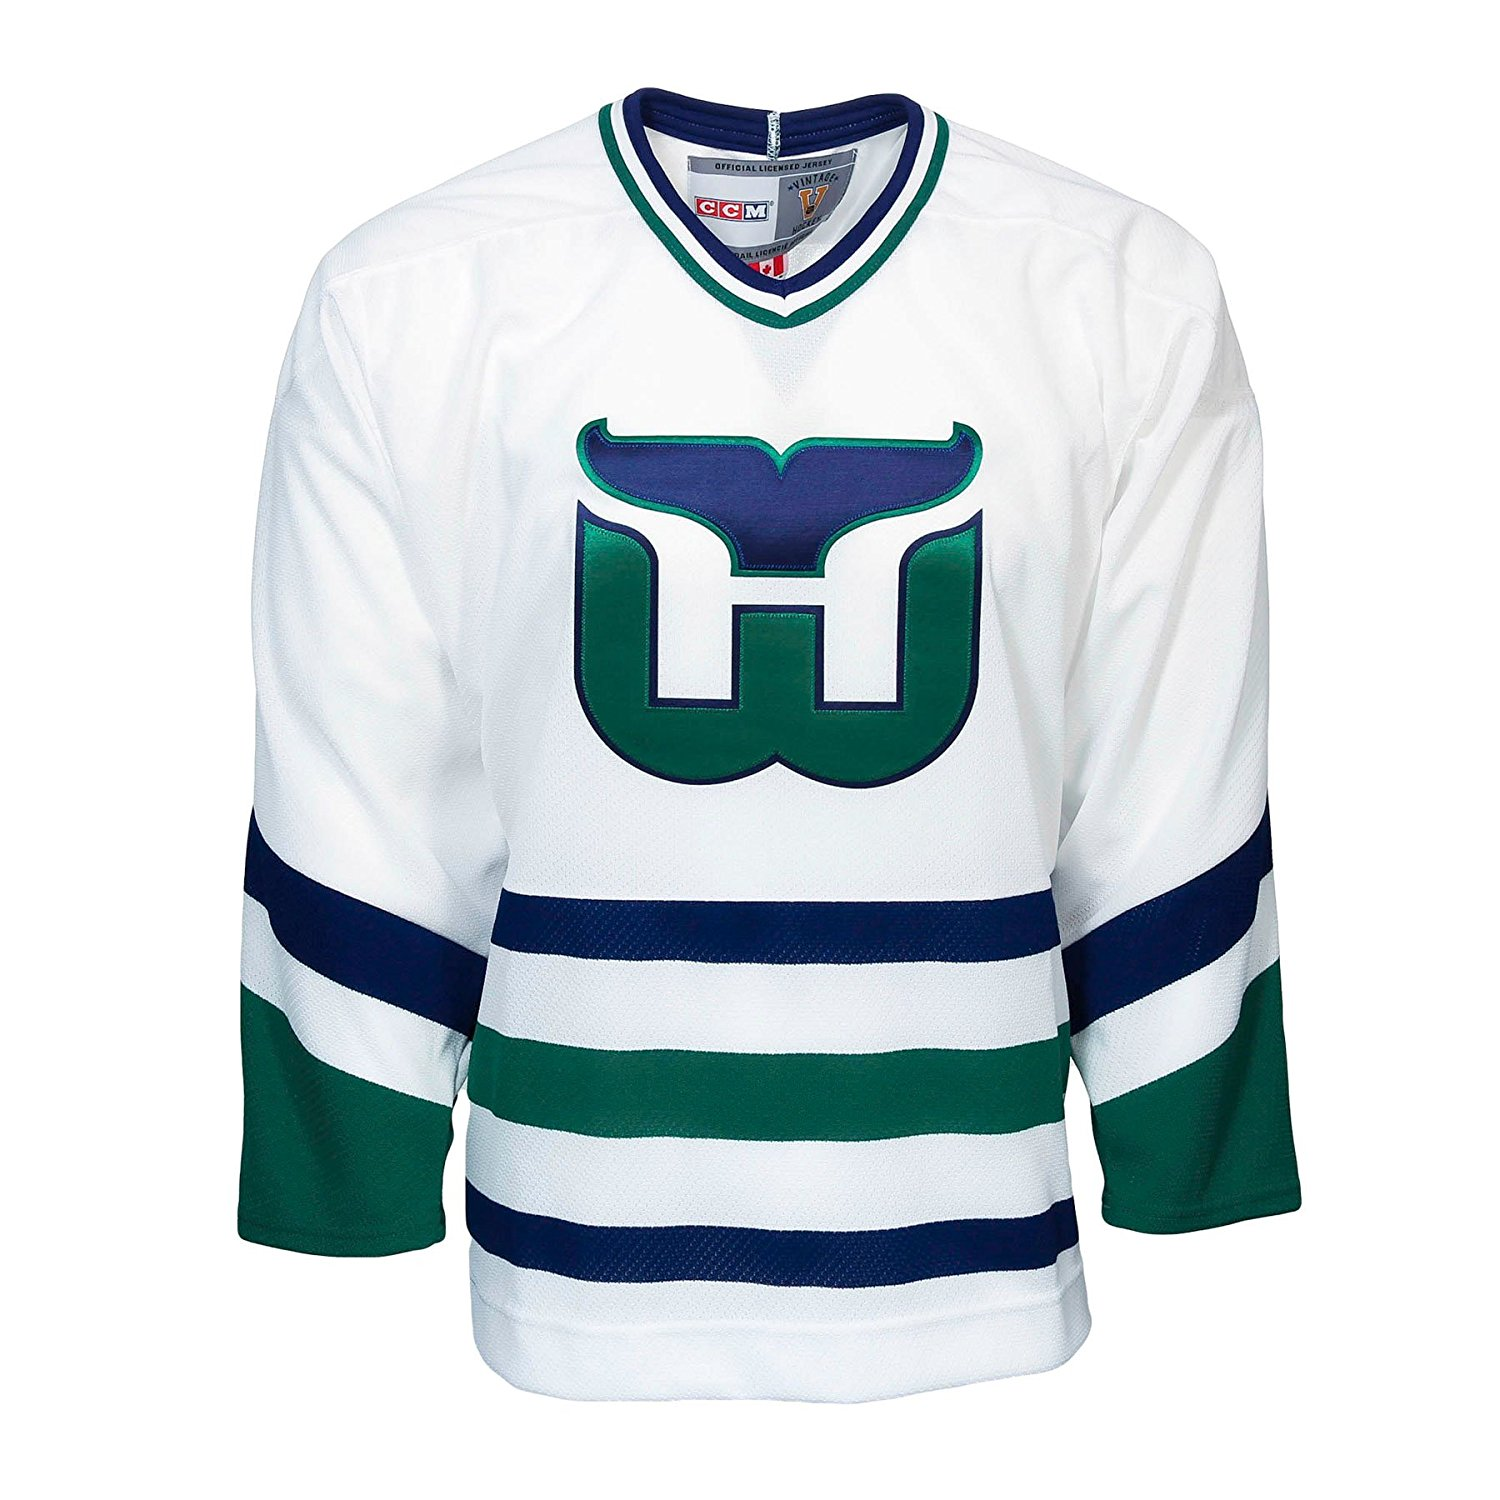 Get Quotations · Hartford Whalers Vintage Replica Jersey 1985 (Home) 86f86e64f90